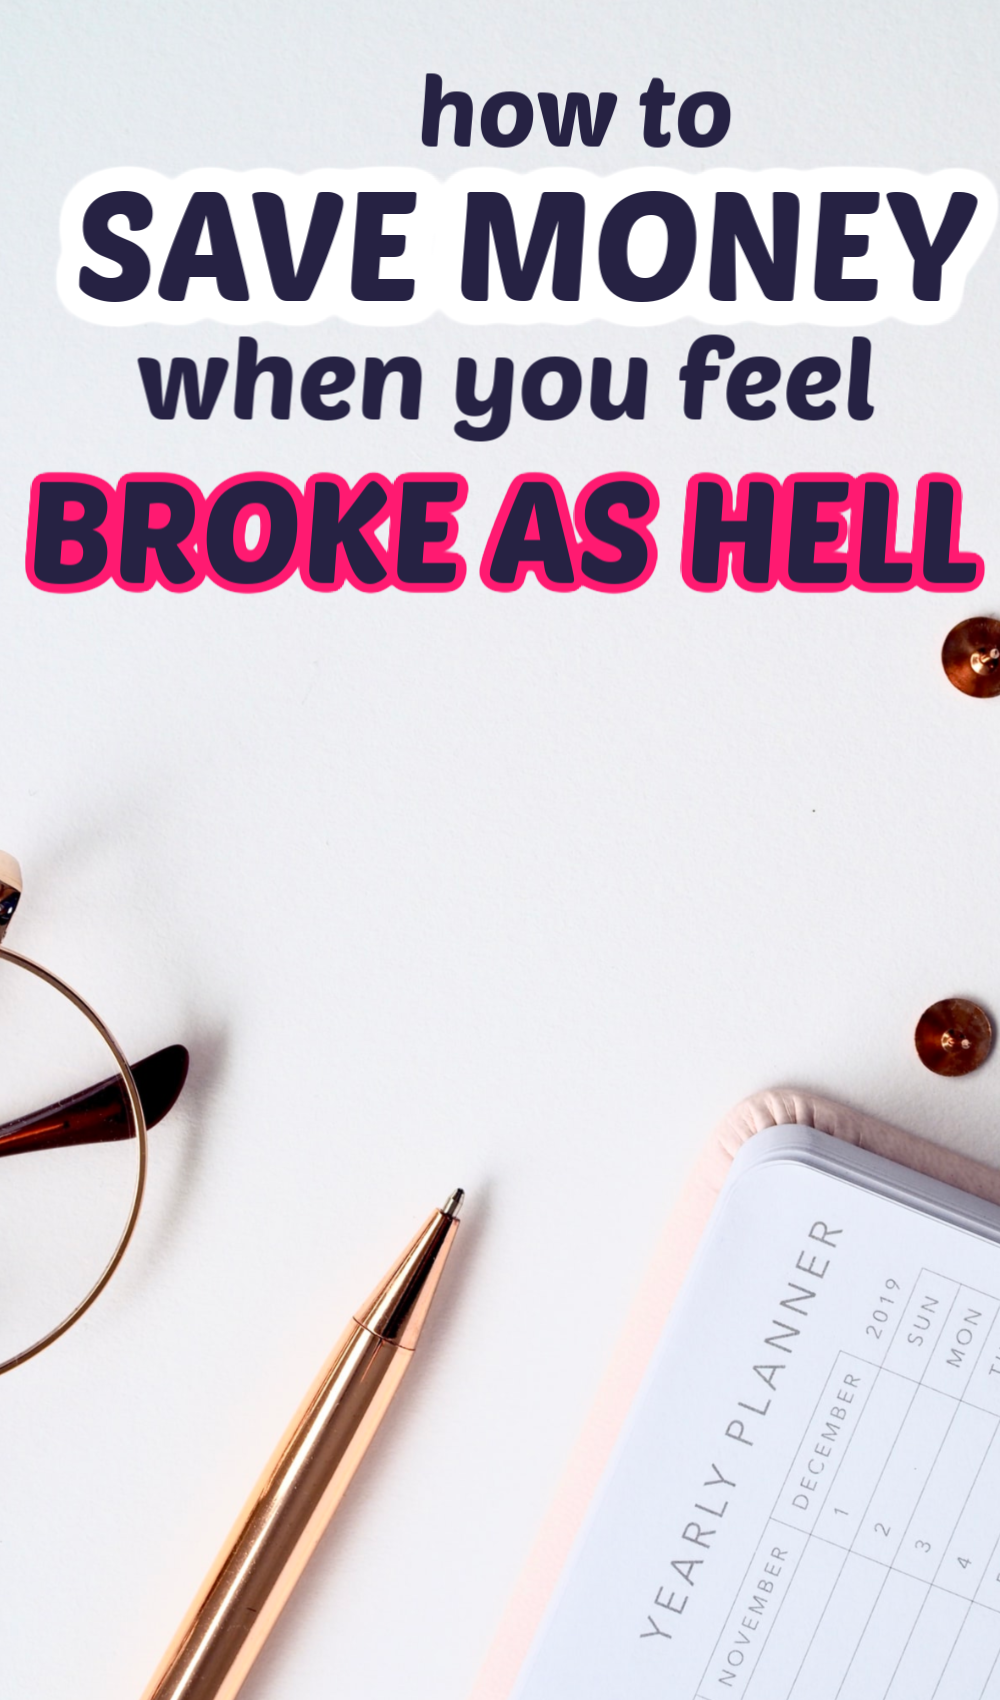 How To Save Money When You Feel Broke Taytalksmoney Money Lifestyle And Productivity Money Life Hacks Feeling Broken How Are You Feeling